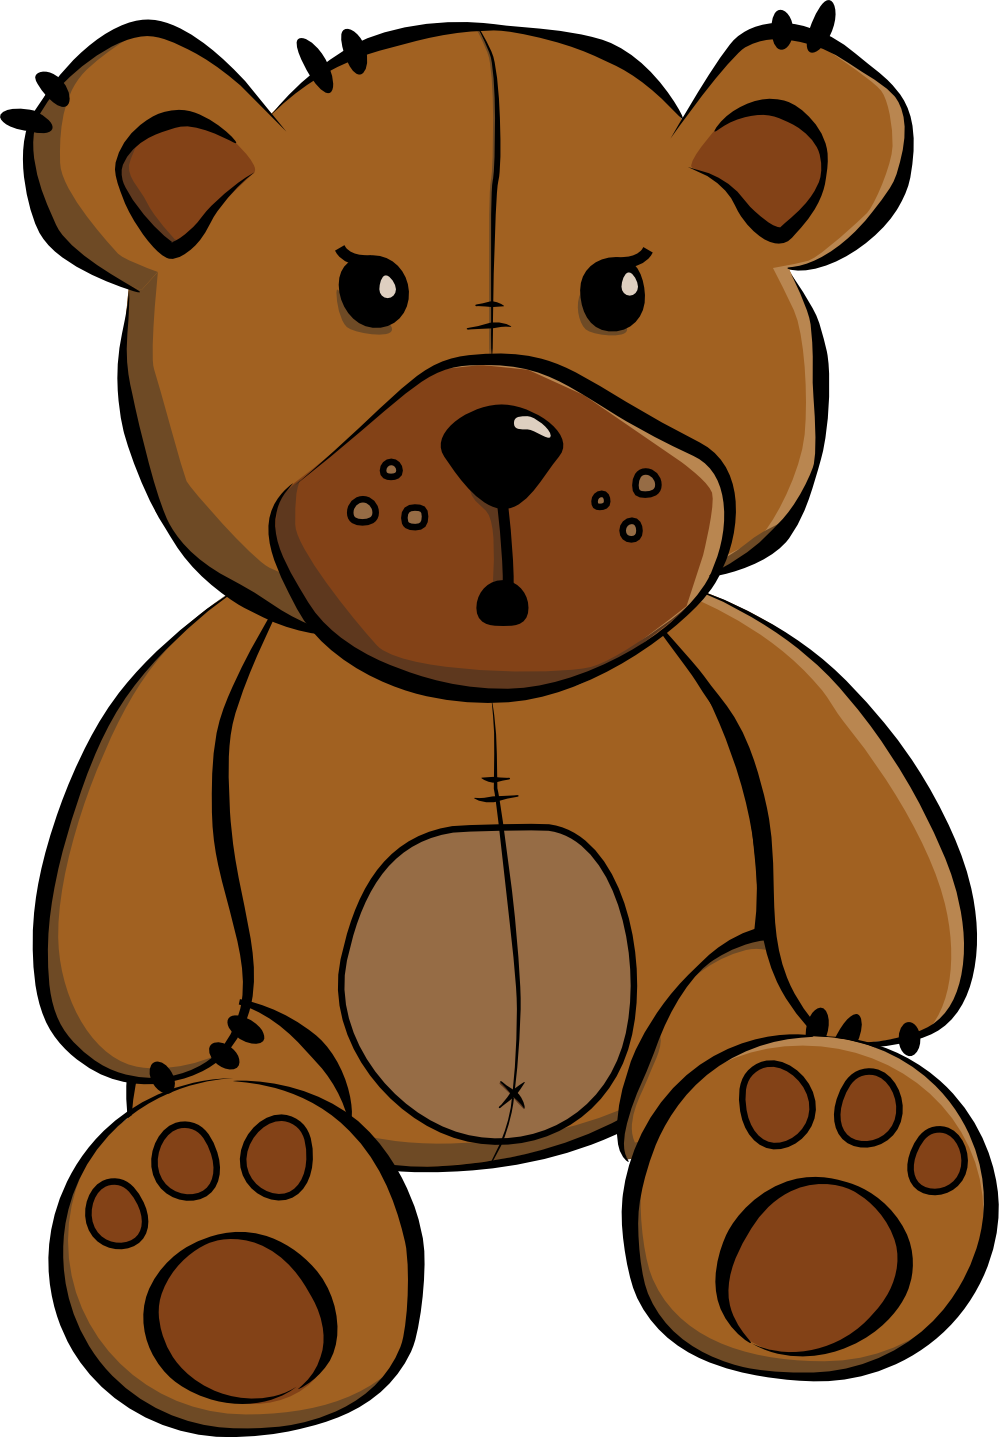 Teddy bear clipart free clipart images 3.